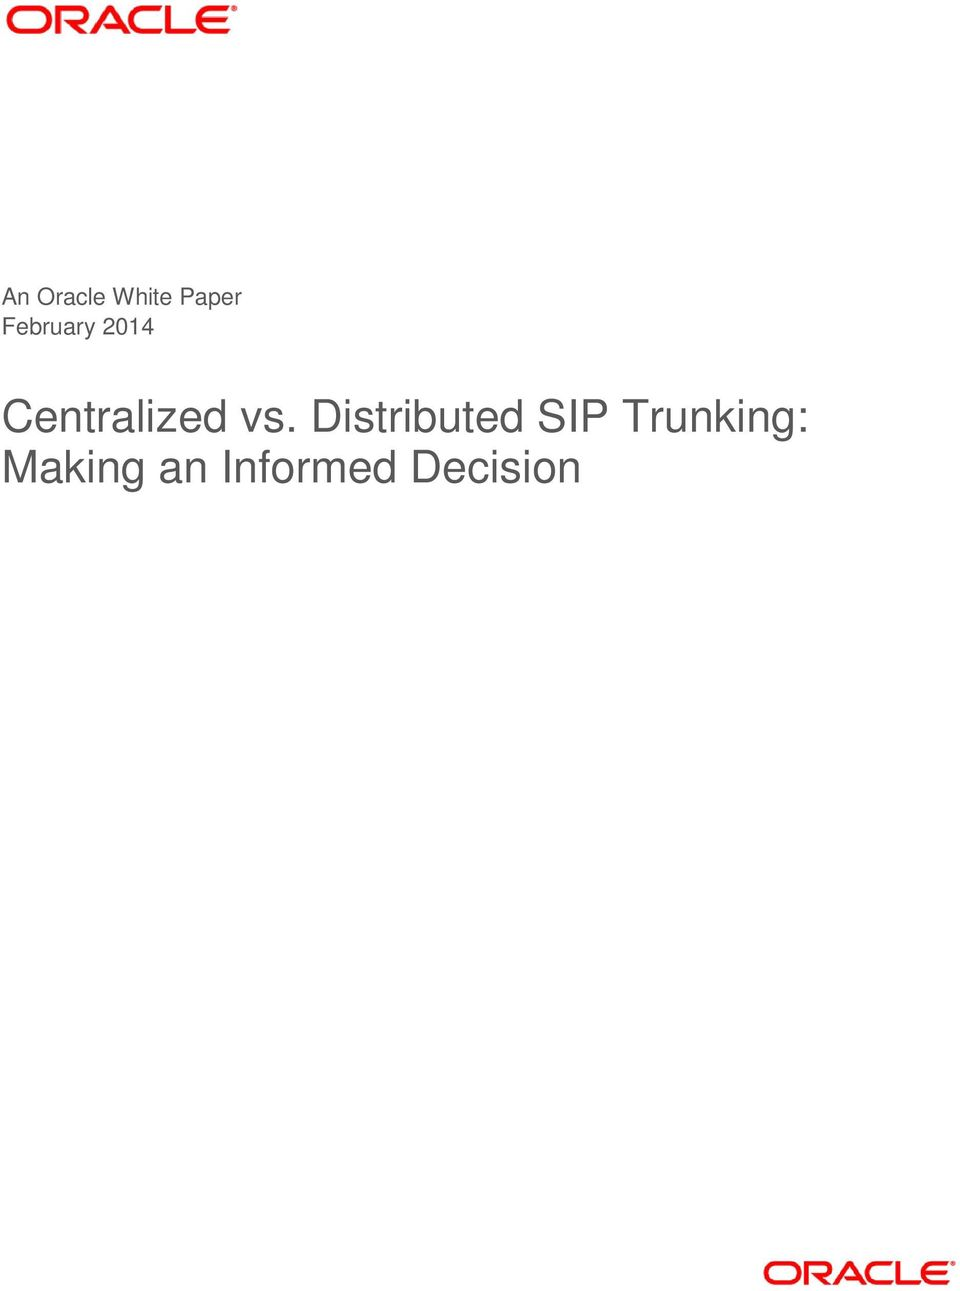 vs. Distributed SIP